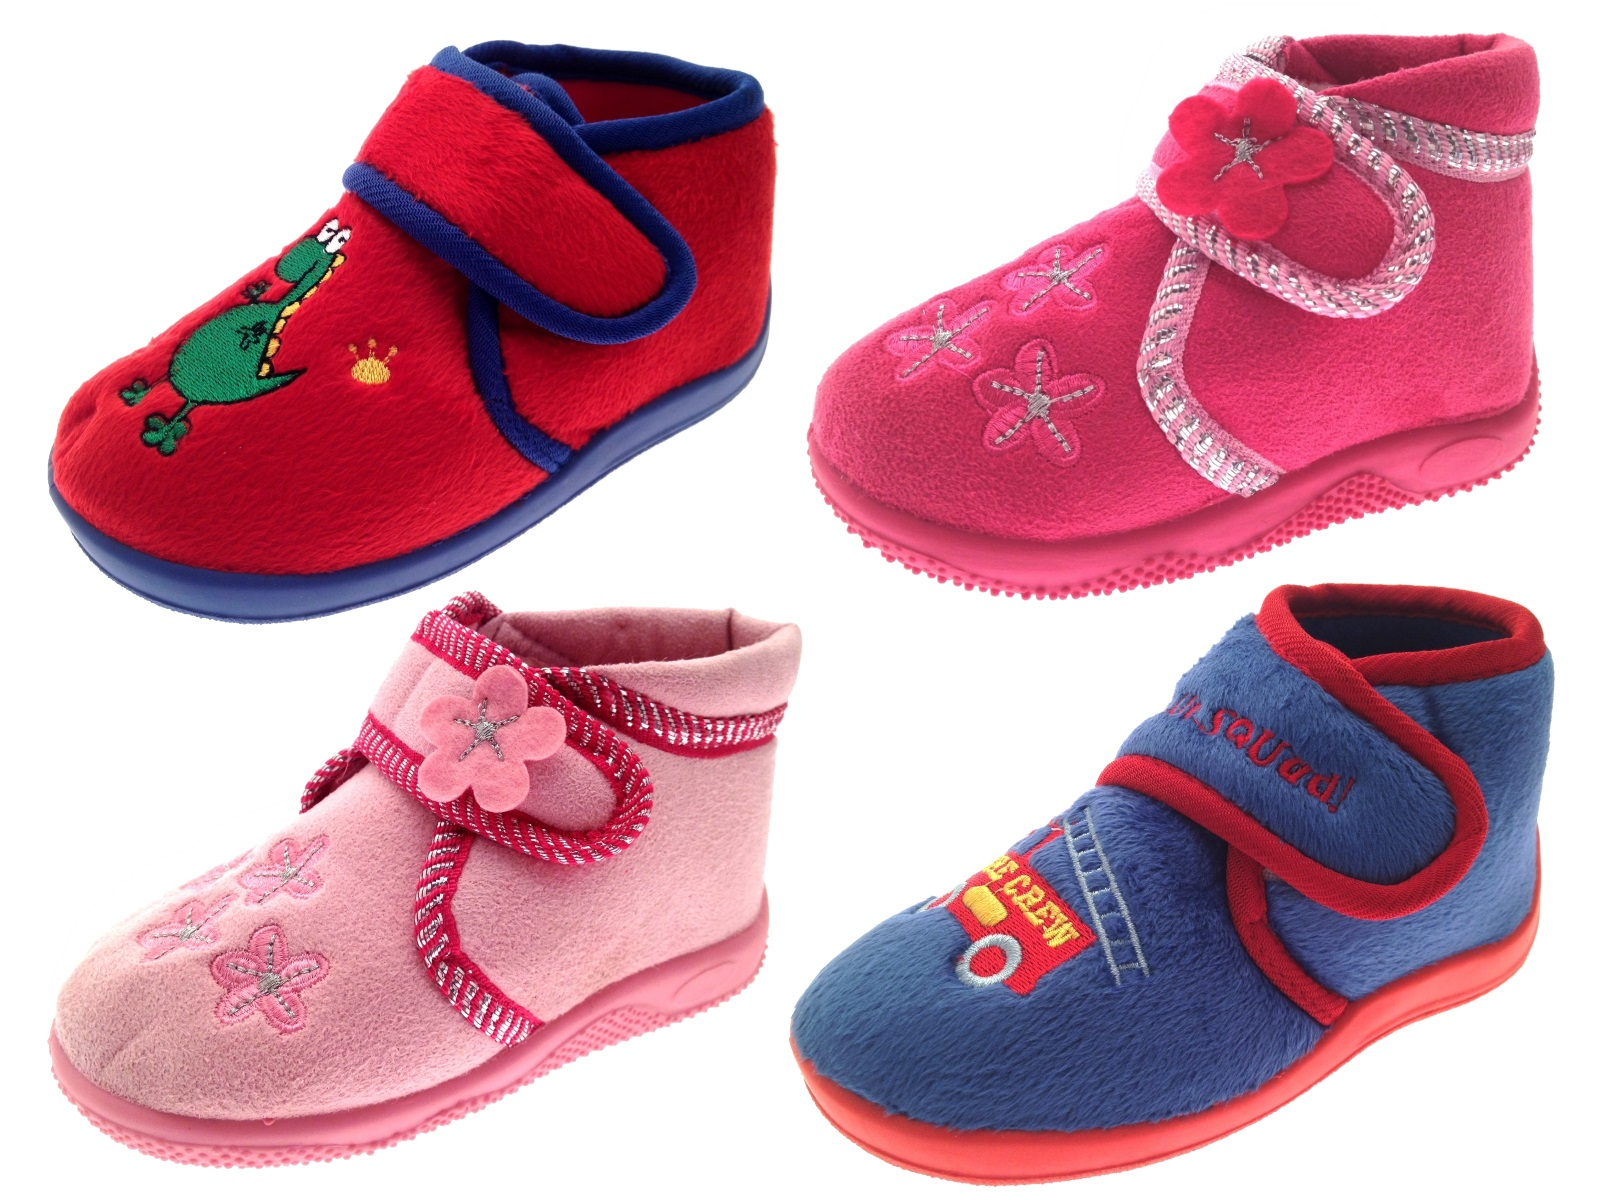 Kids Boys Girls Toddlers Slippers Boots Booties Childrens Shoes ...